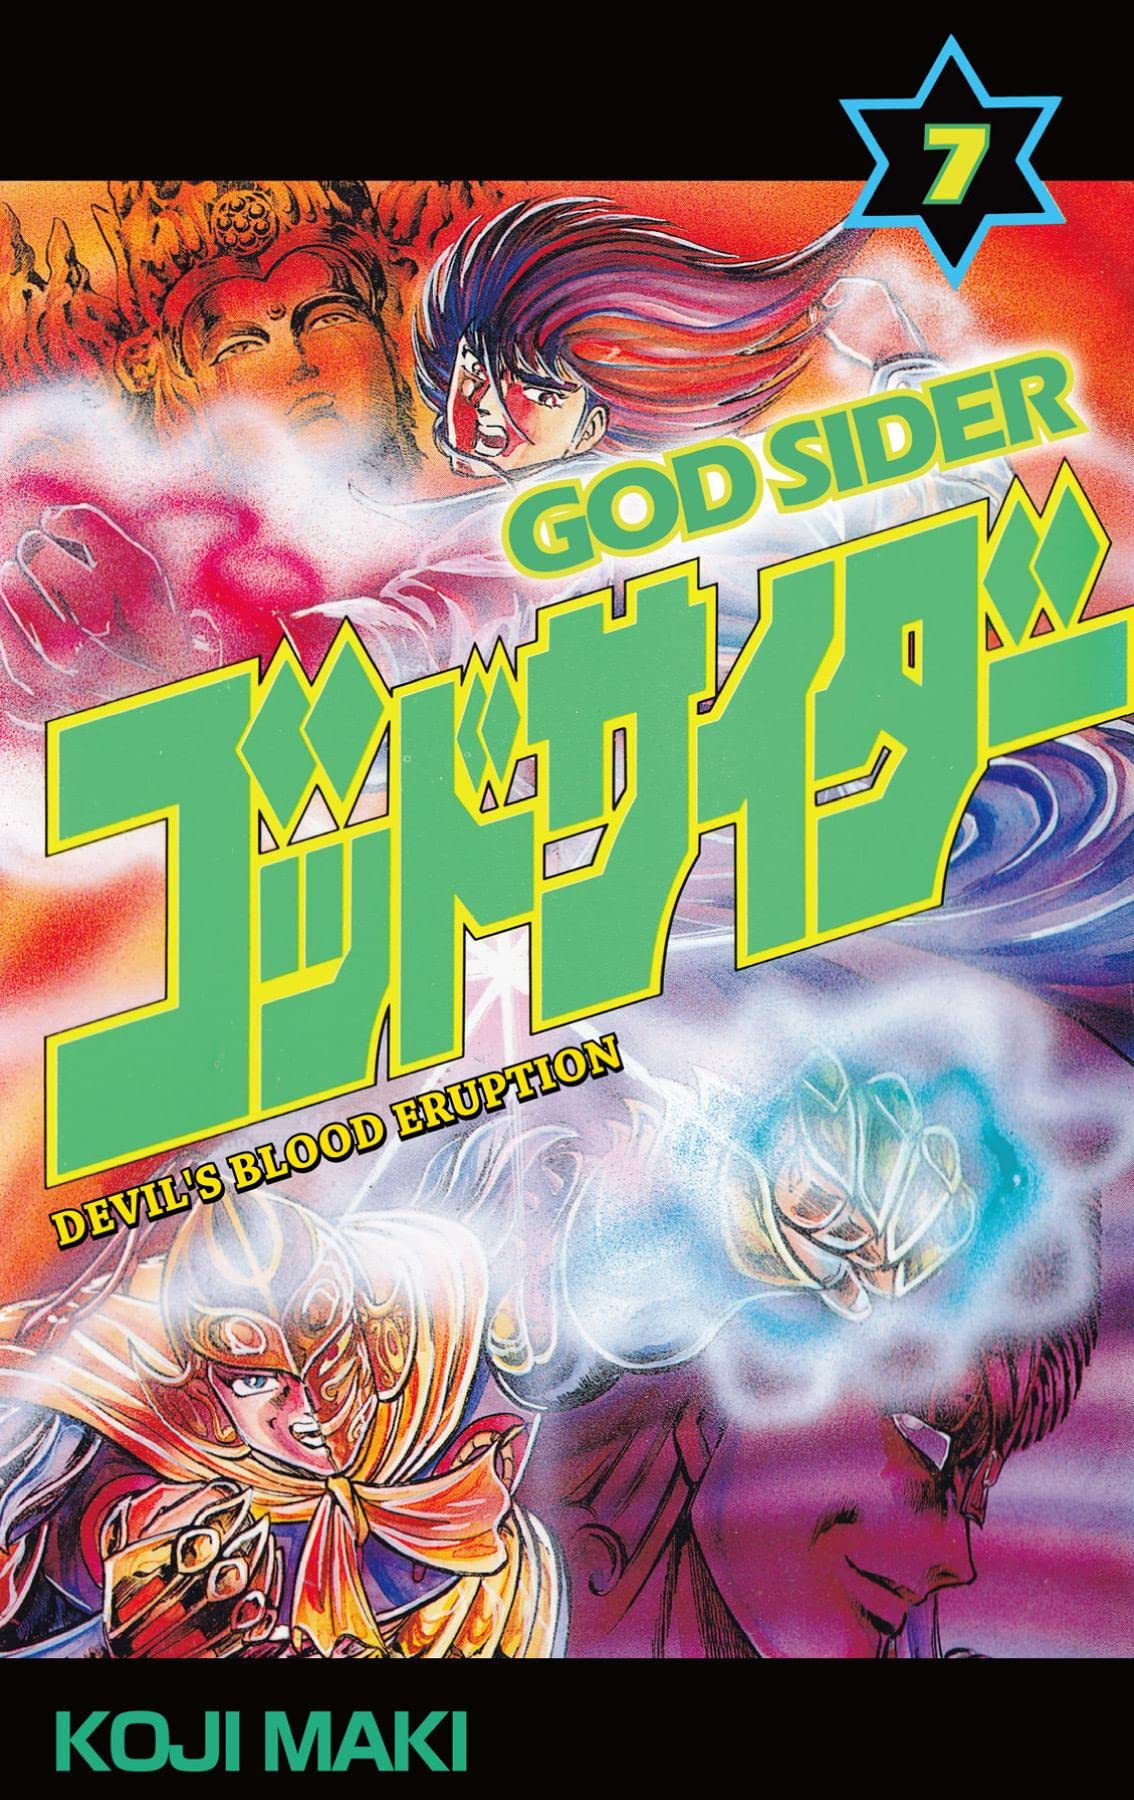 GOD SIDER Vol. 7